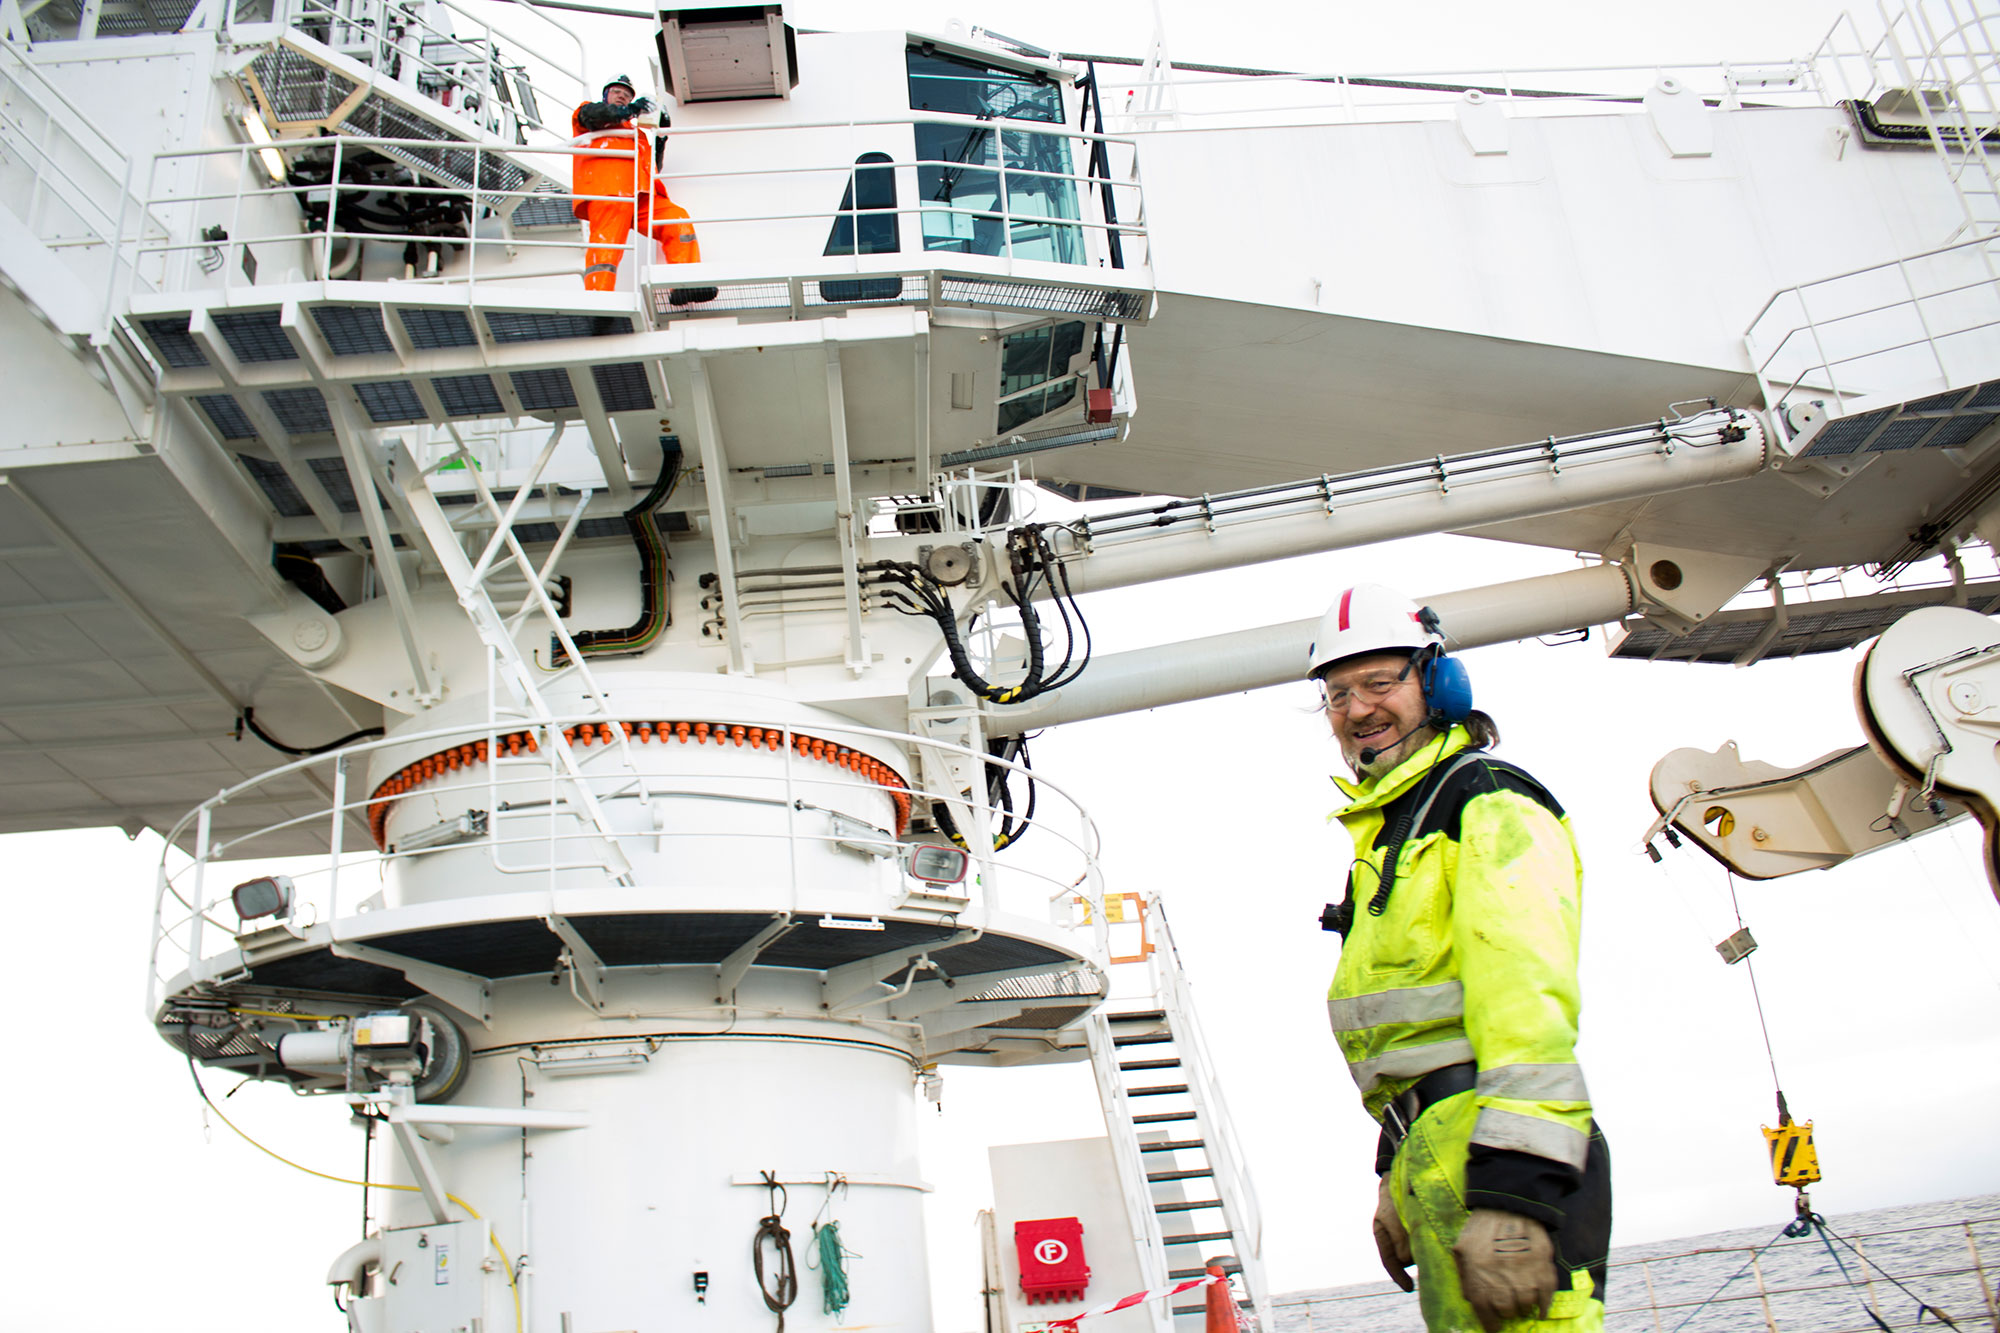 Crane maintenance on the subsea vessel 'Seven Viking' in the North Sea.